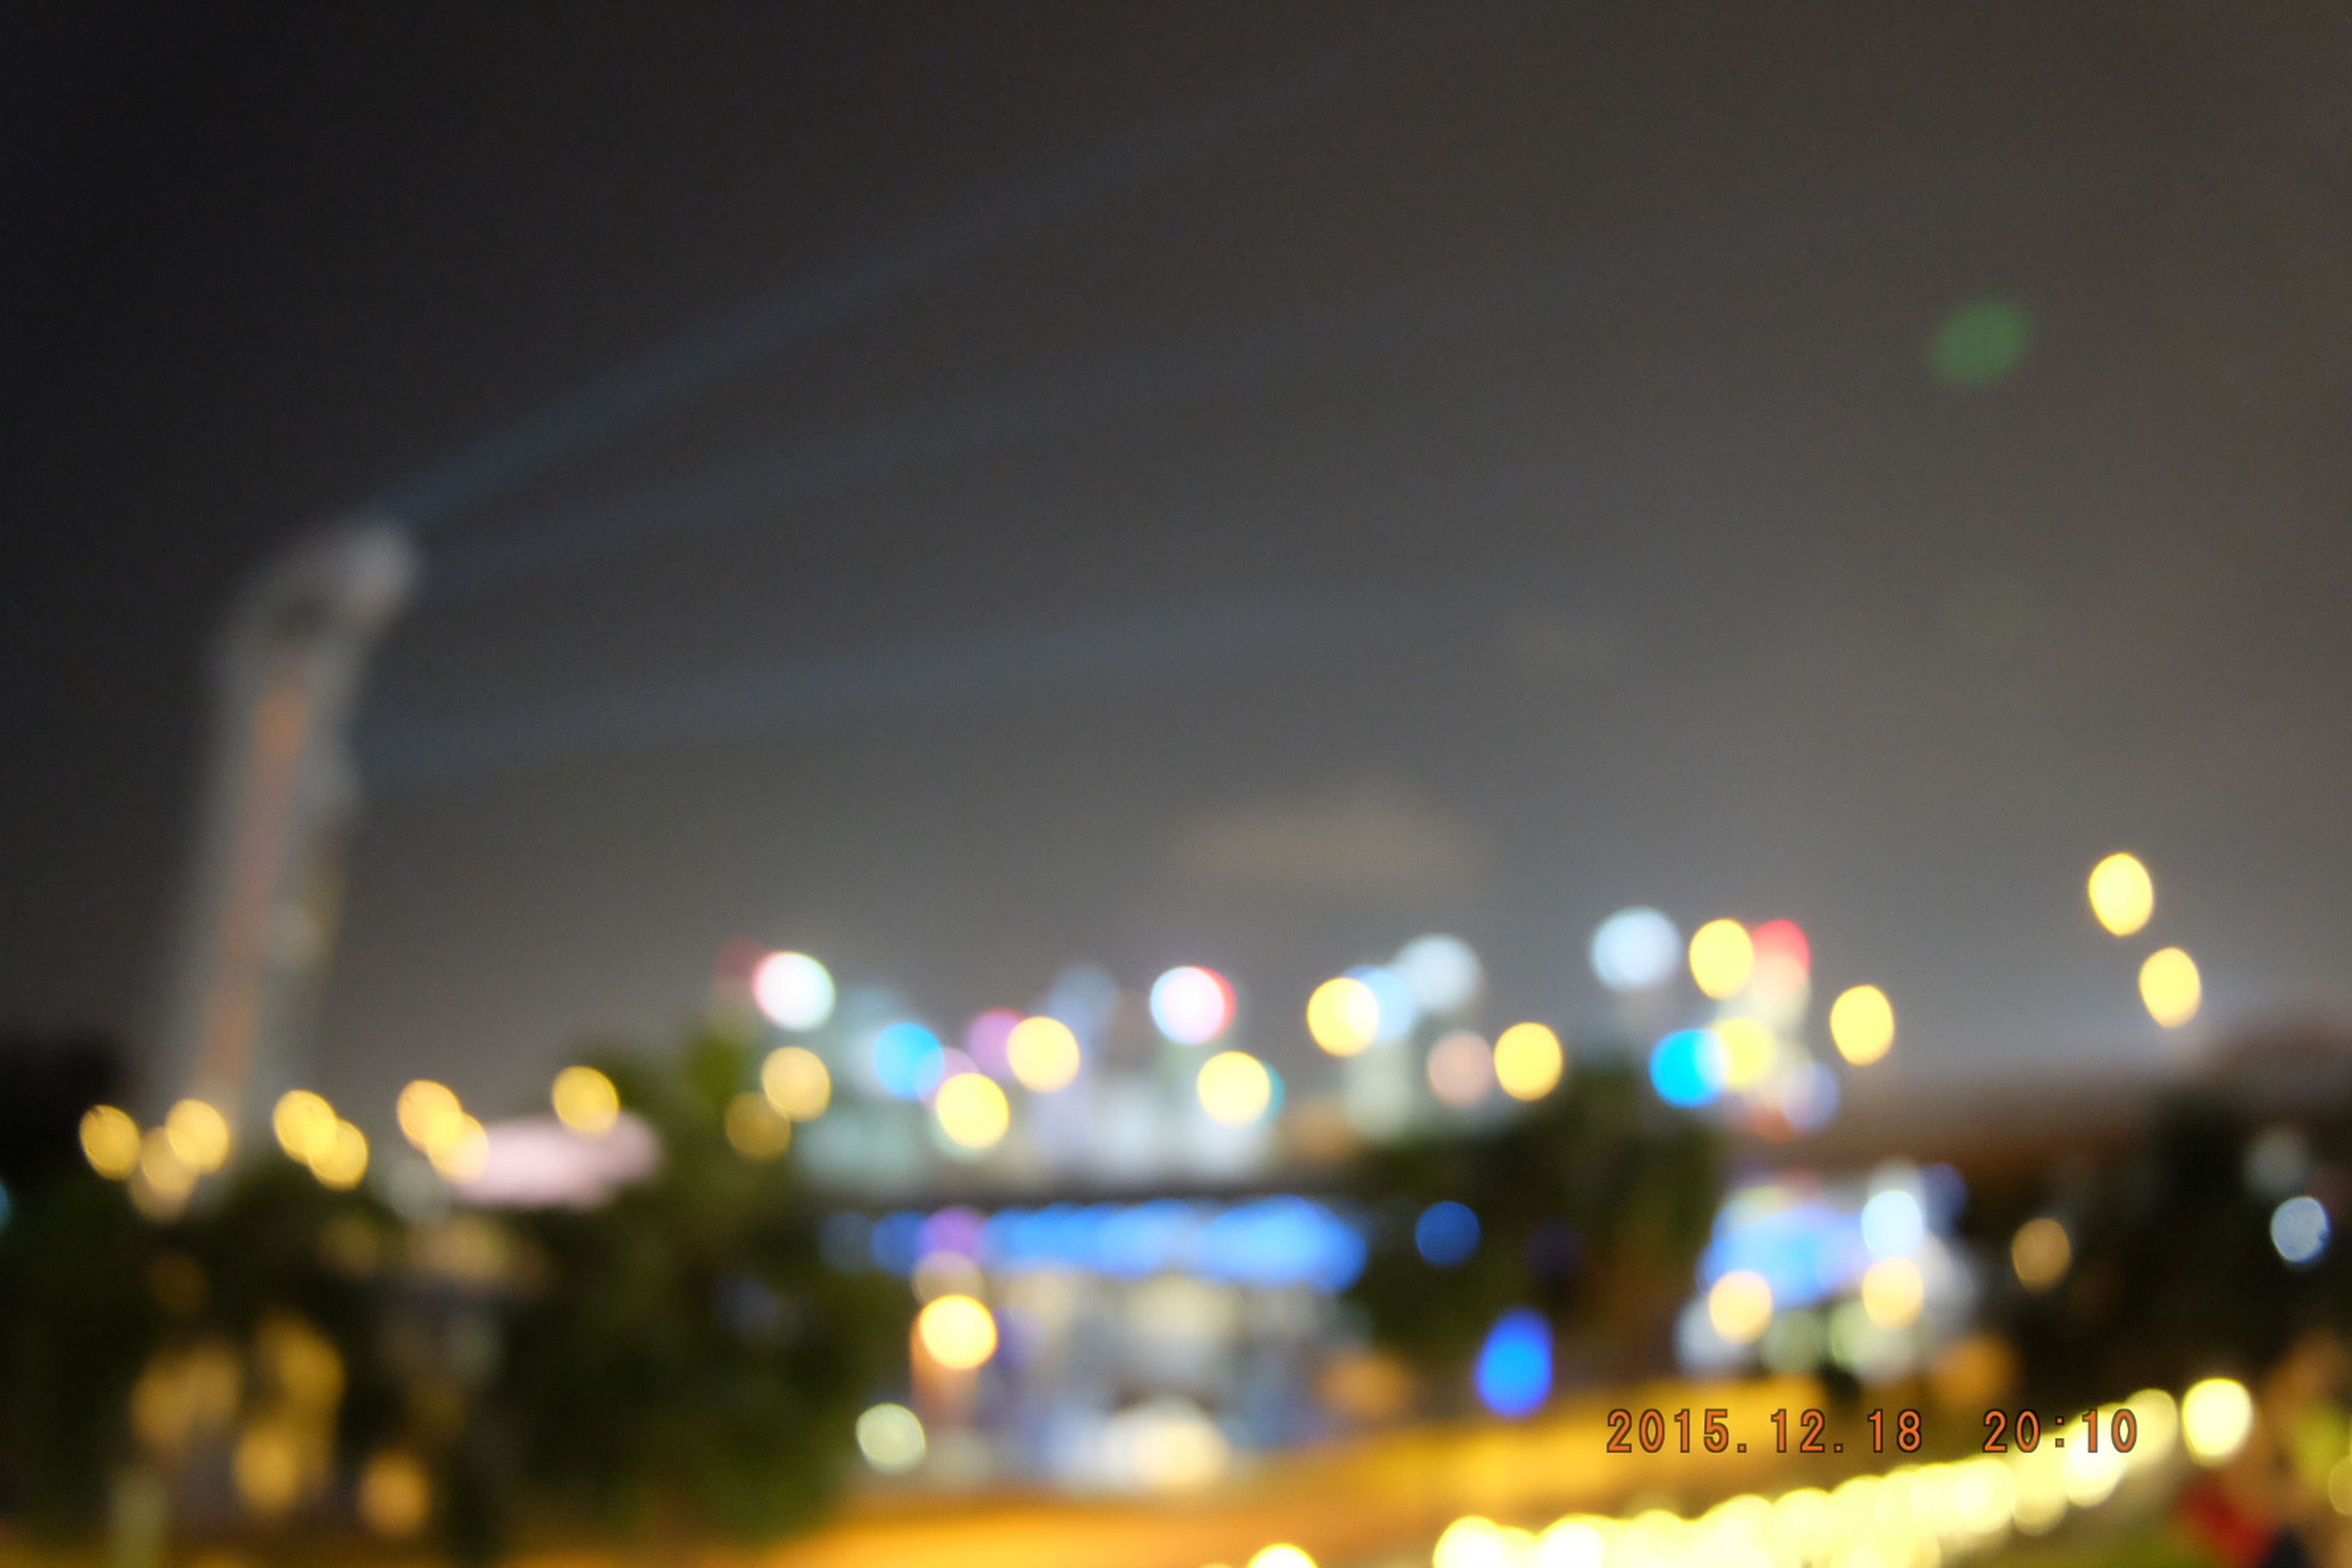 illuminated, night, defocused, lighting equipment, city, light - natural phenomenon, multi colored, building exterior, glowing, architecture, lens flare, no people, built structure, light, outdoors, selective focus, street, transportation, street light, city life